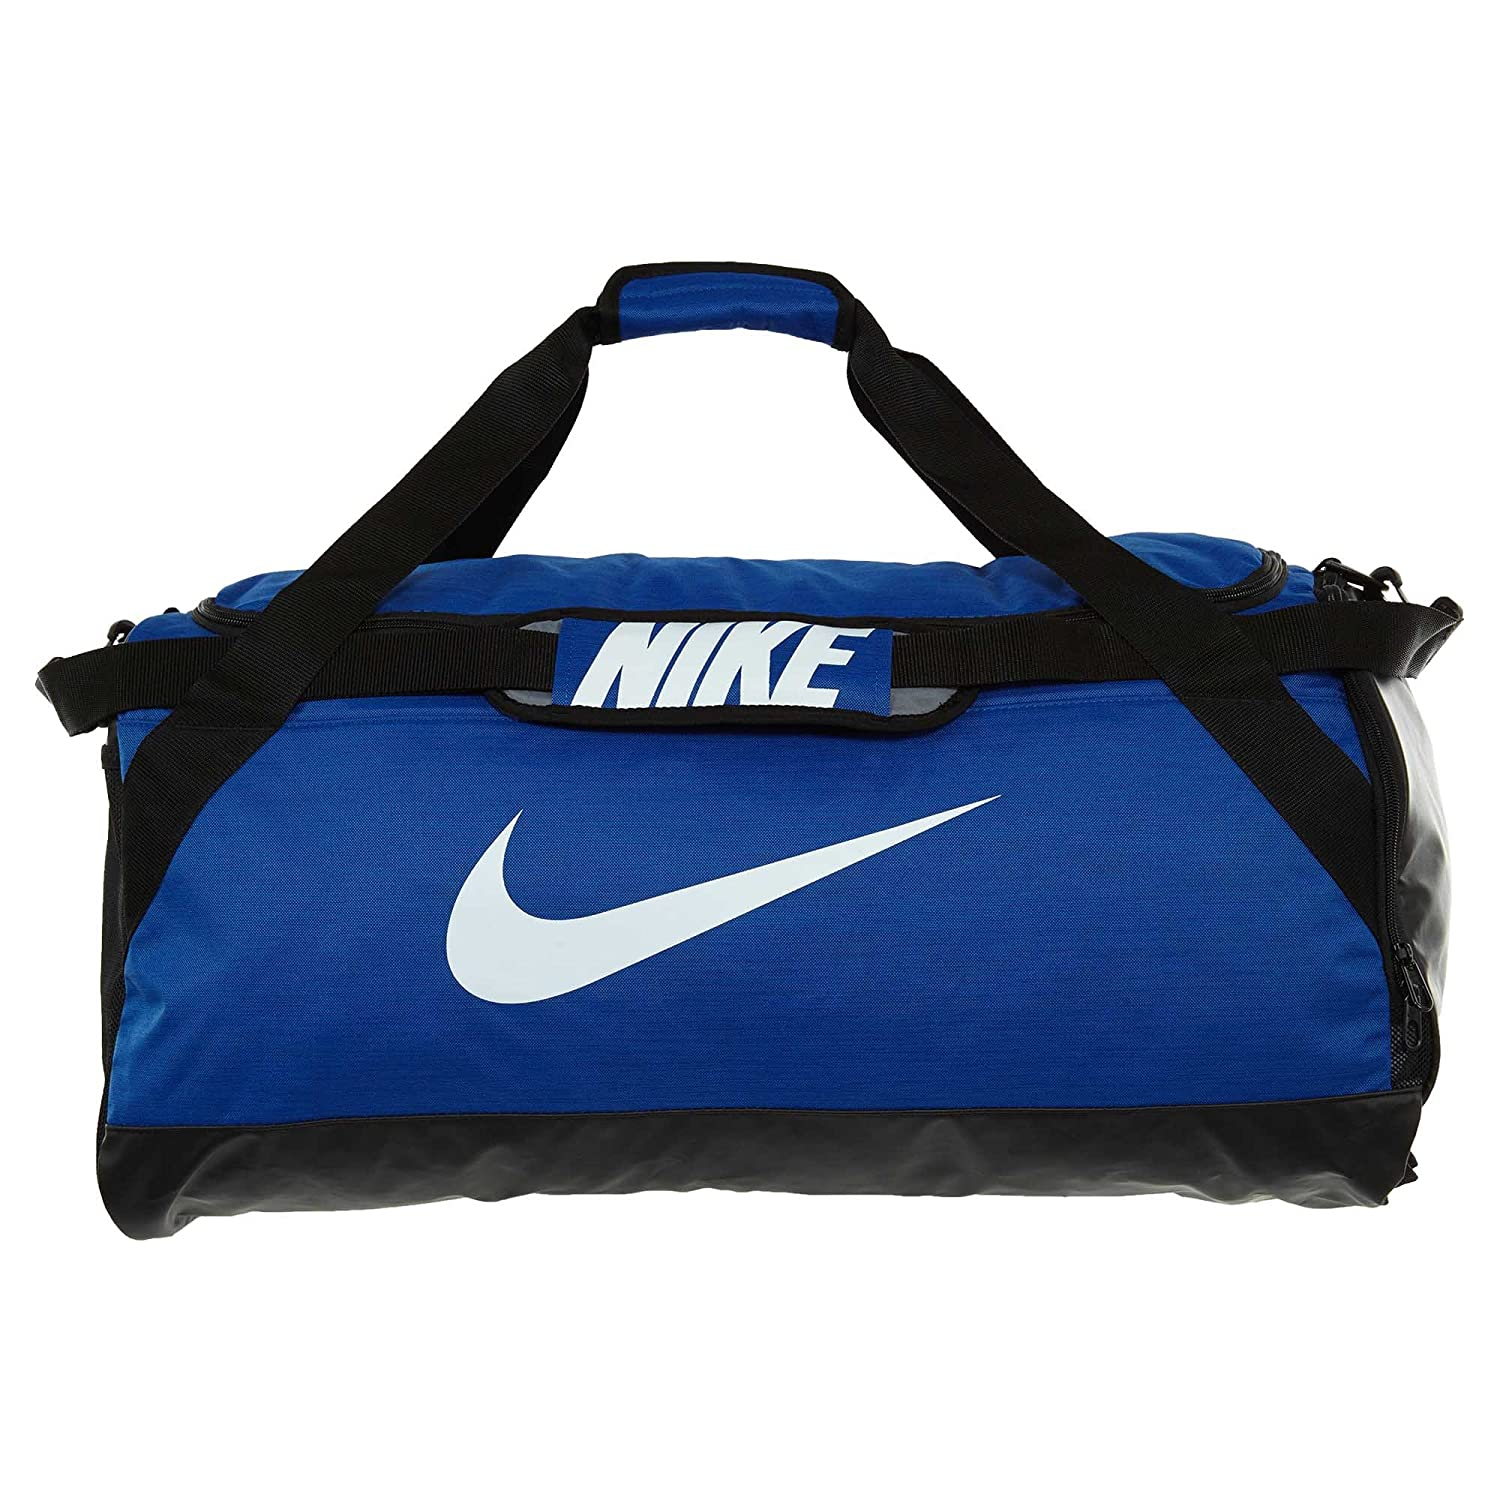 98b3a47e9e3 Amazon.com  NIKE Brasilia Training Duffel Bag, Black Black White, Large   NIKE  Sports   Outdoors